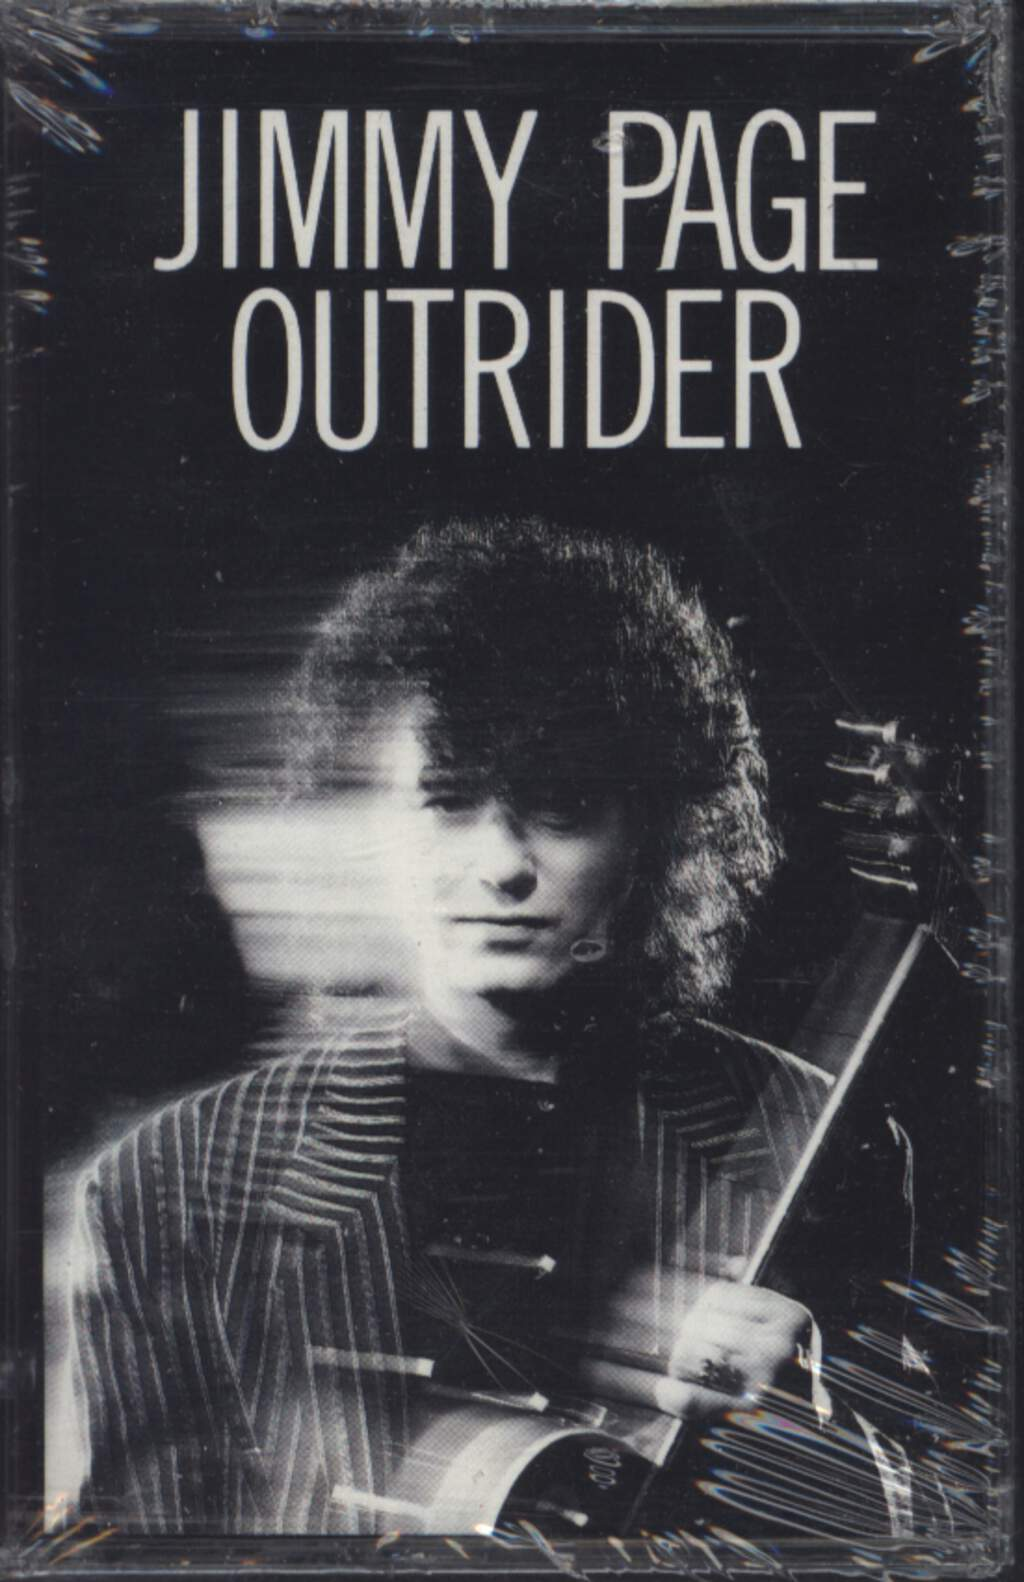 Jimmy Page: Outrider, Compact Cassette